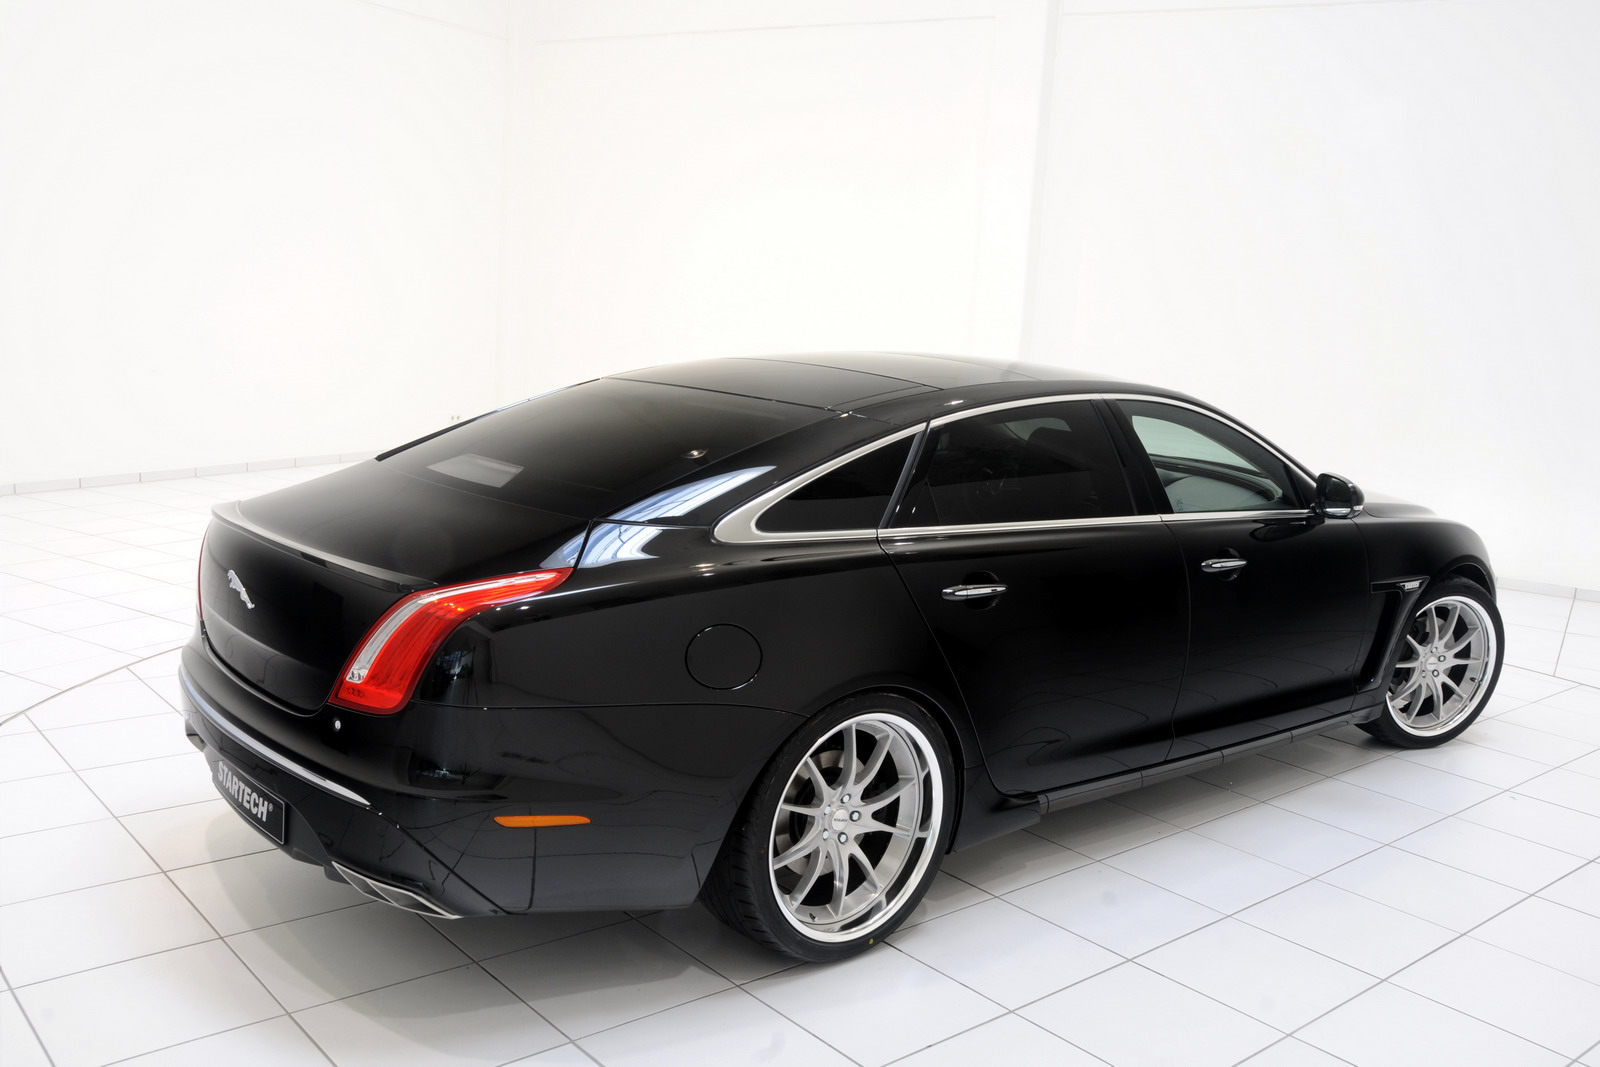 2012 Jaguar XJ Limo 4 Startech adds Style to the 2012 Jaguar XJ Limo